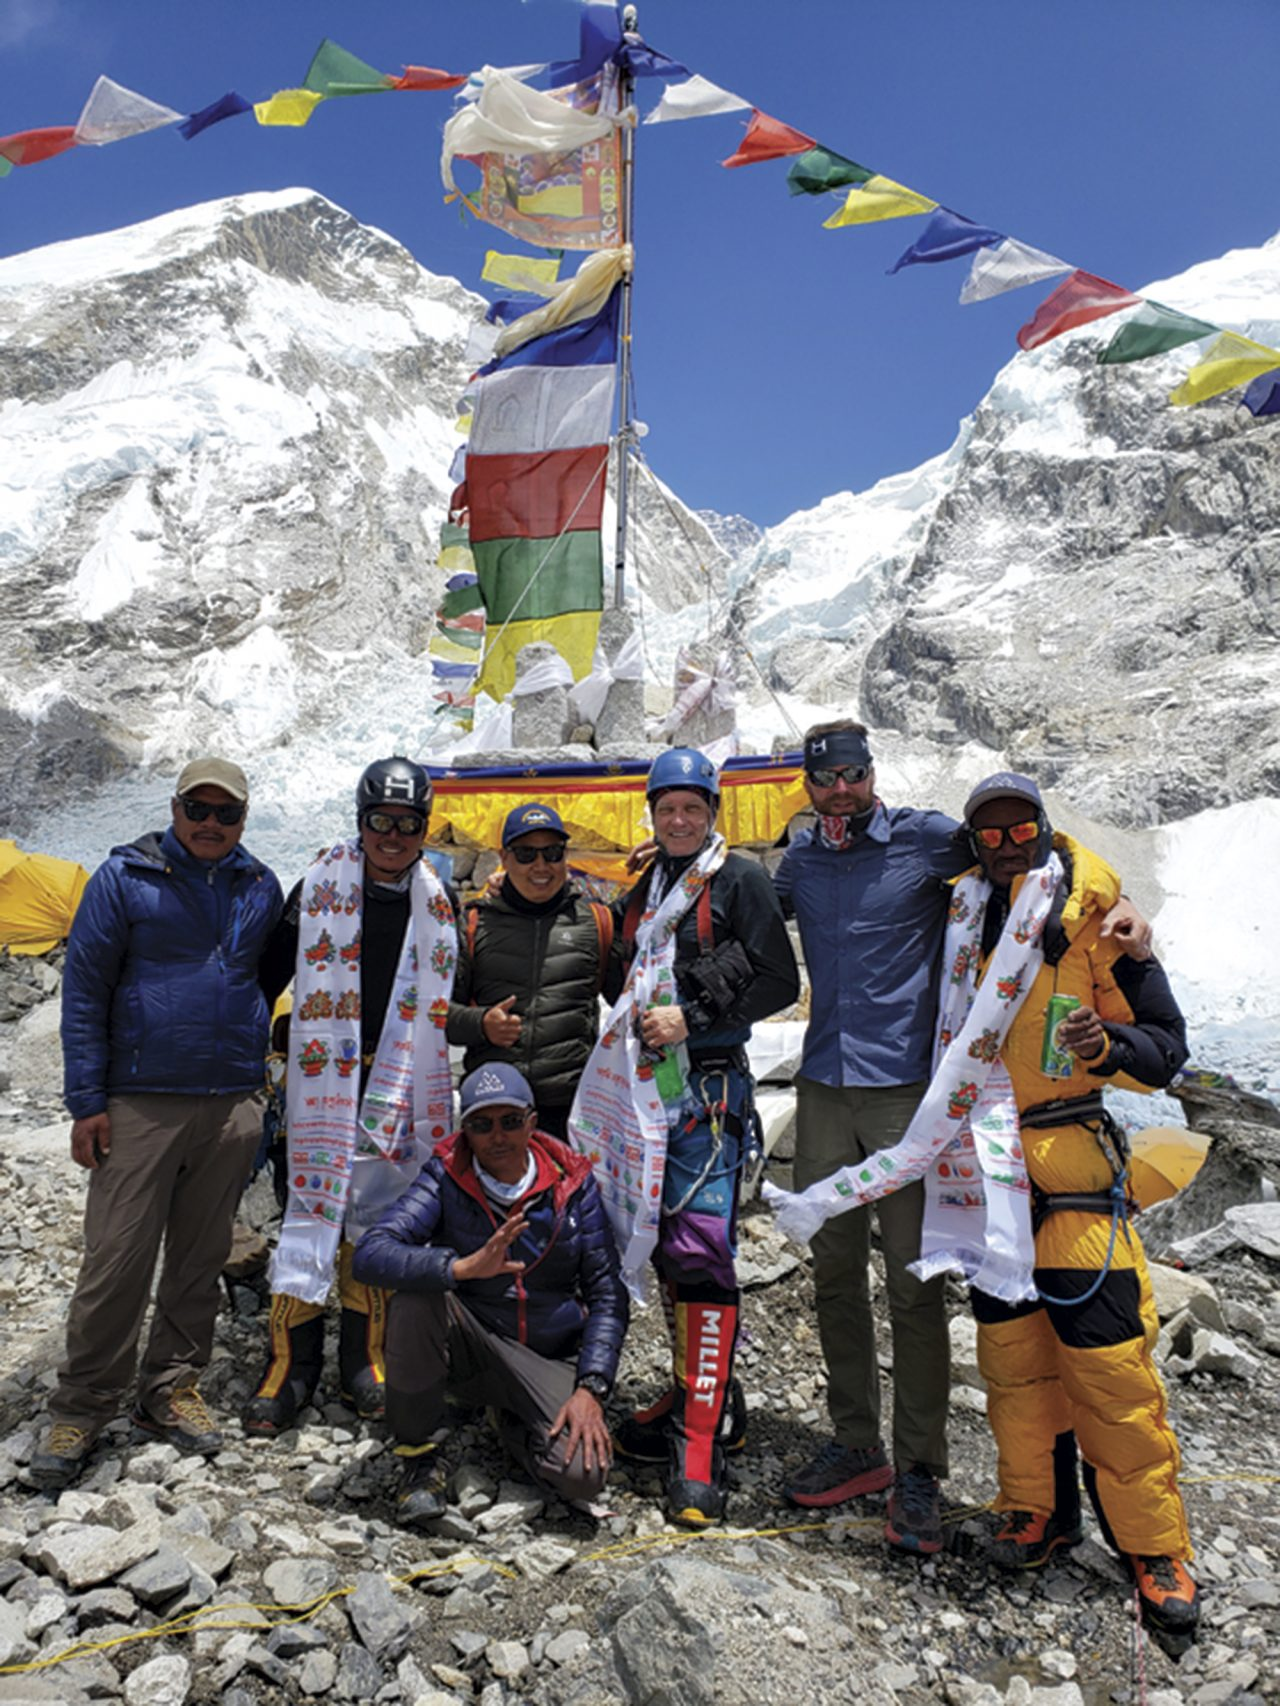 Dohring's team celebrating in front of the ceremonial puja altar after summiting; Photo courtesy Ed Dohring